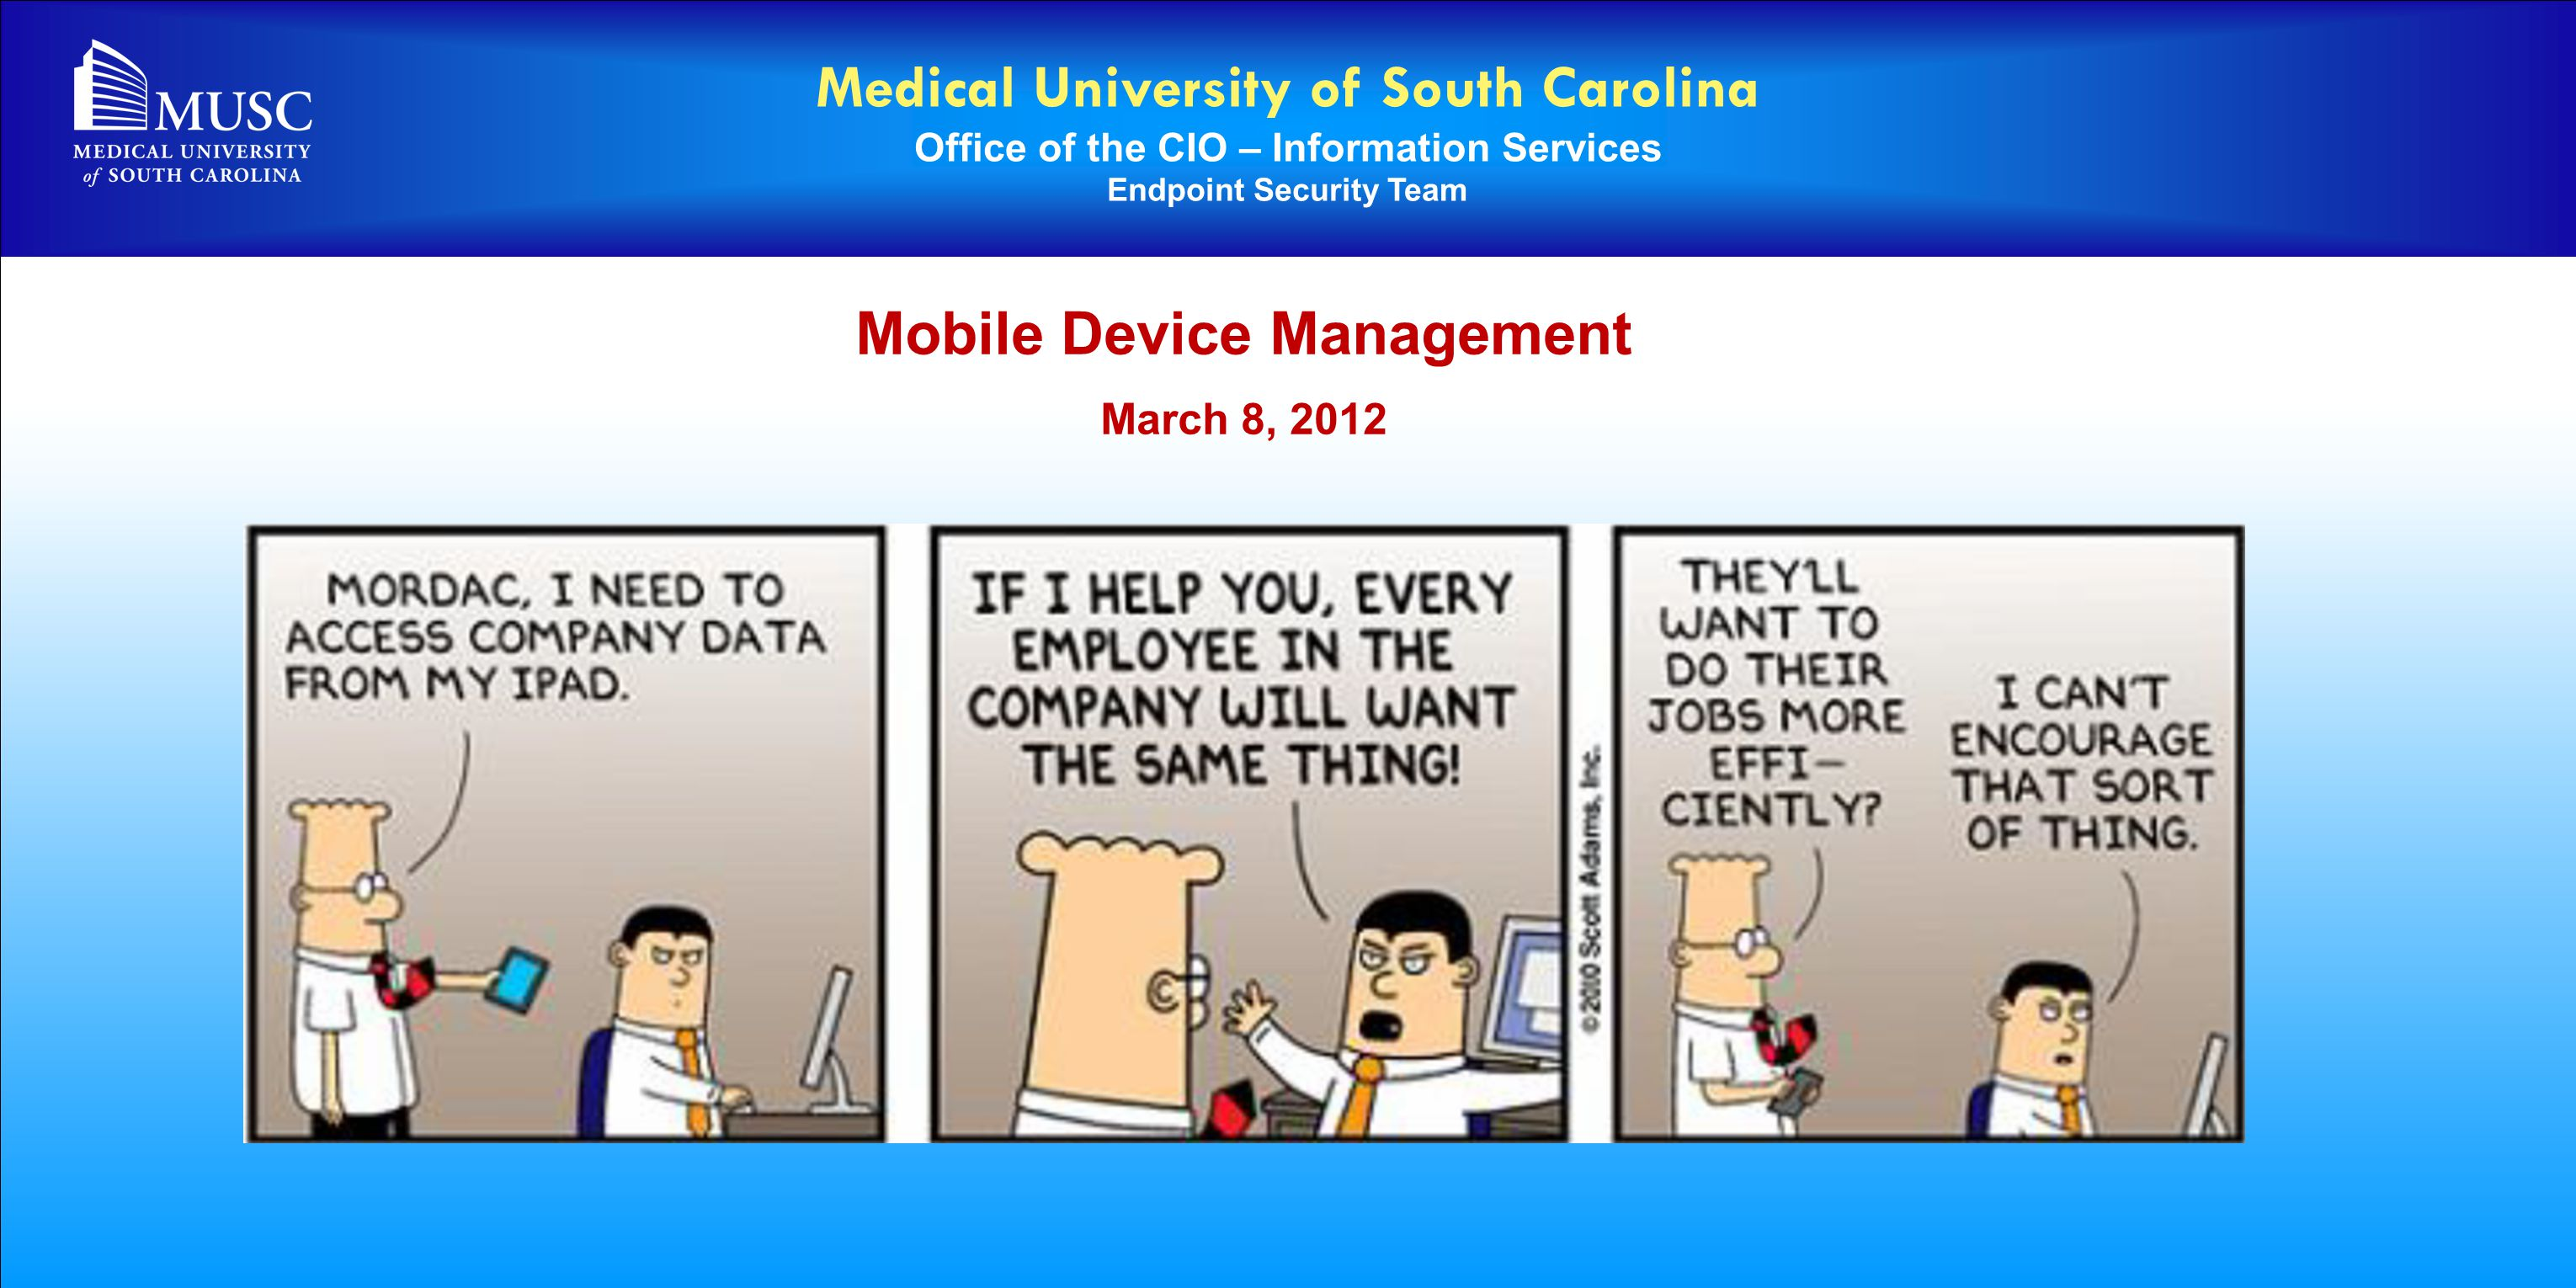 App Explosion Device Proliferation Healthcare provider adoption soars Mobility Coming of Age at MUSC 2010 Gotta Have It! 1,600 Mobile Devices at MUSC 690 are iPhone, Android or Windows Mobile 900 are Blackberry How do we manage all these devices.